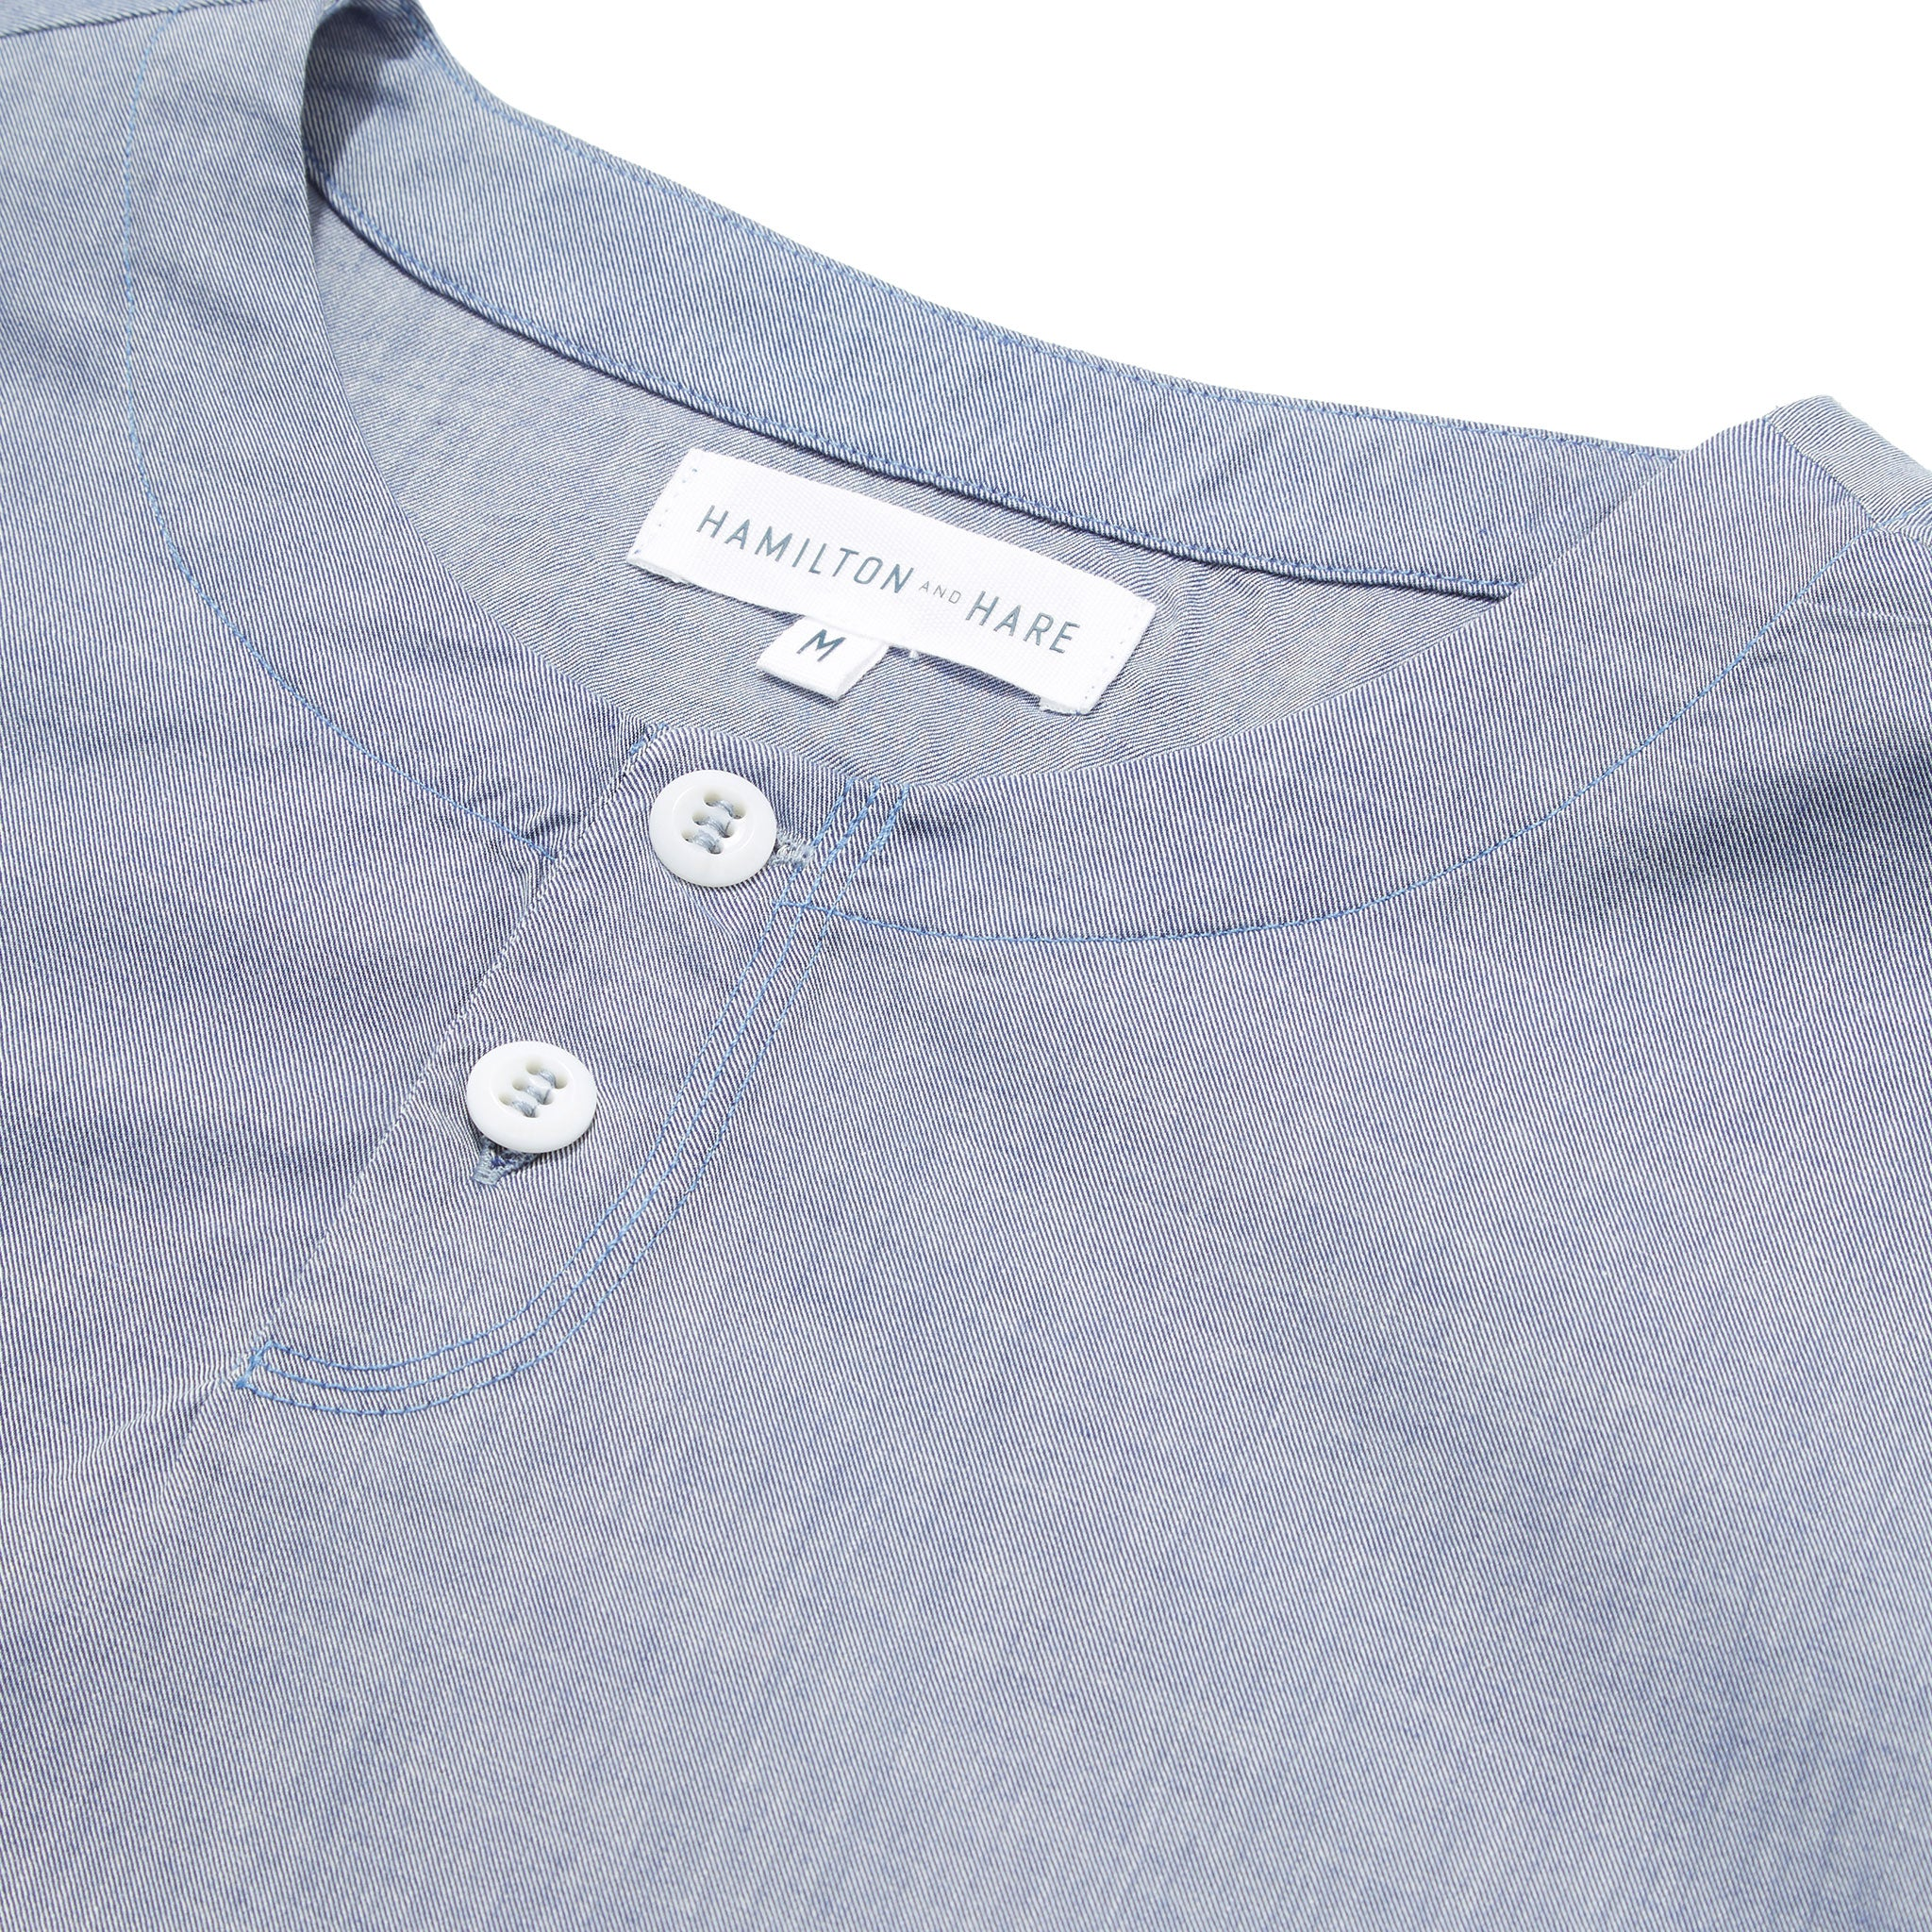 Hamilton and Hare Cotton Cashmere Sleep Shirt Chambray Blue